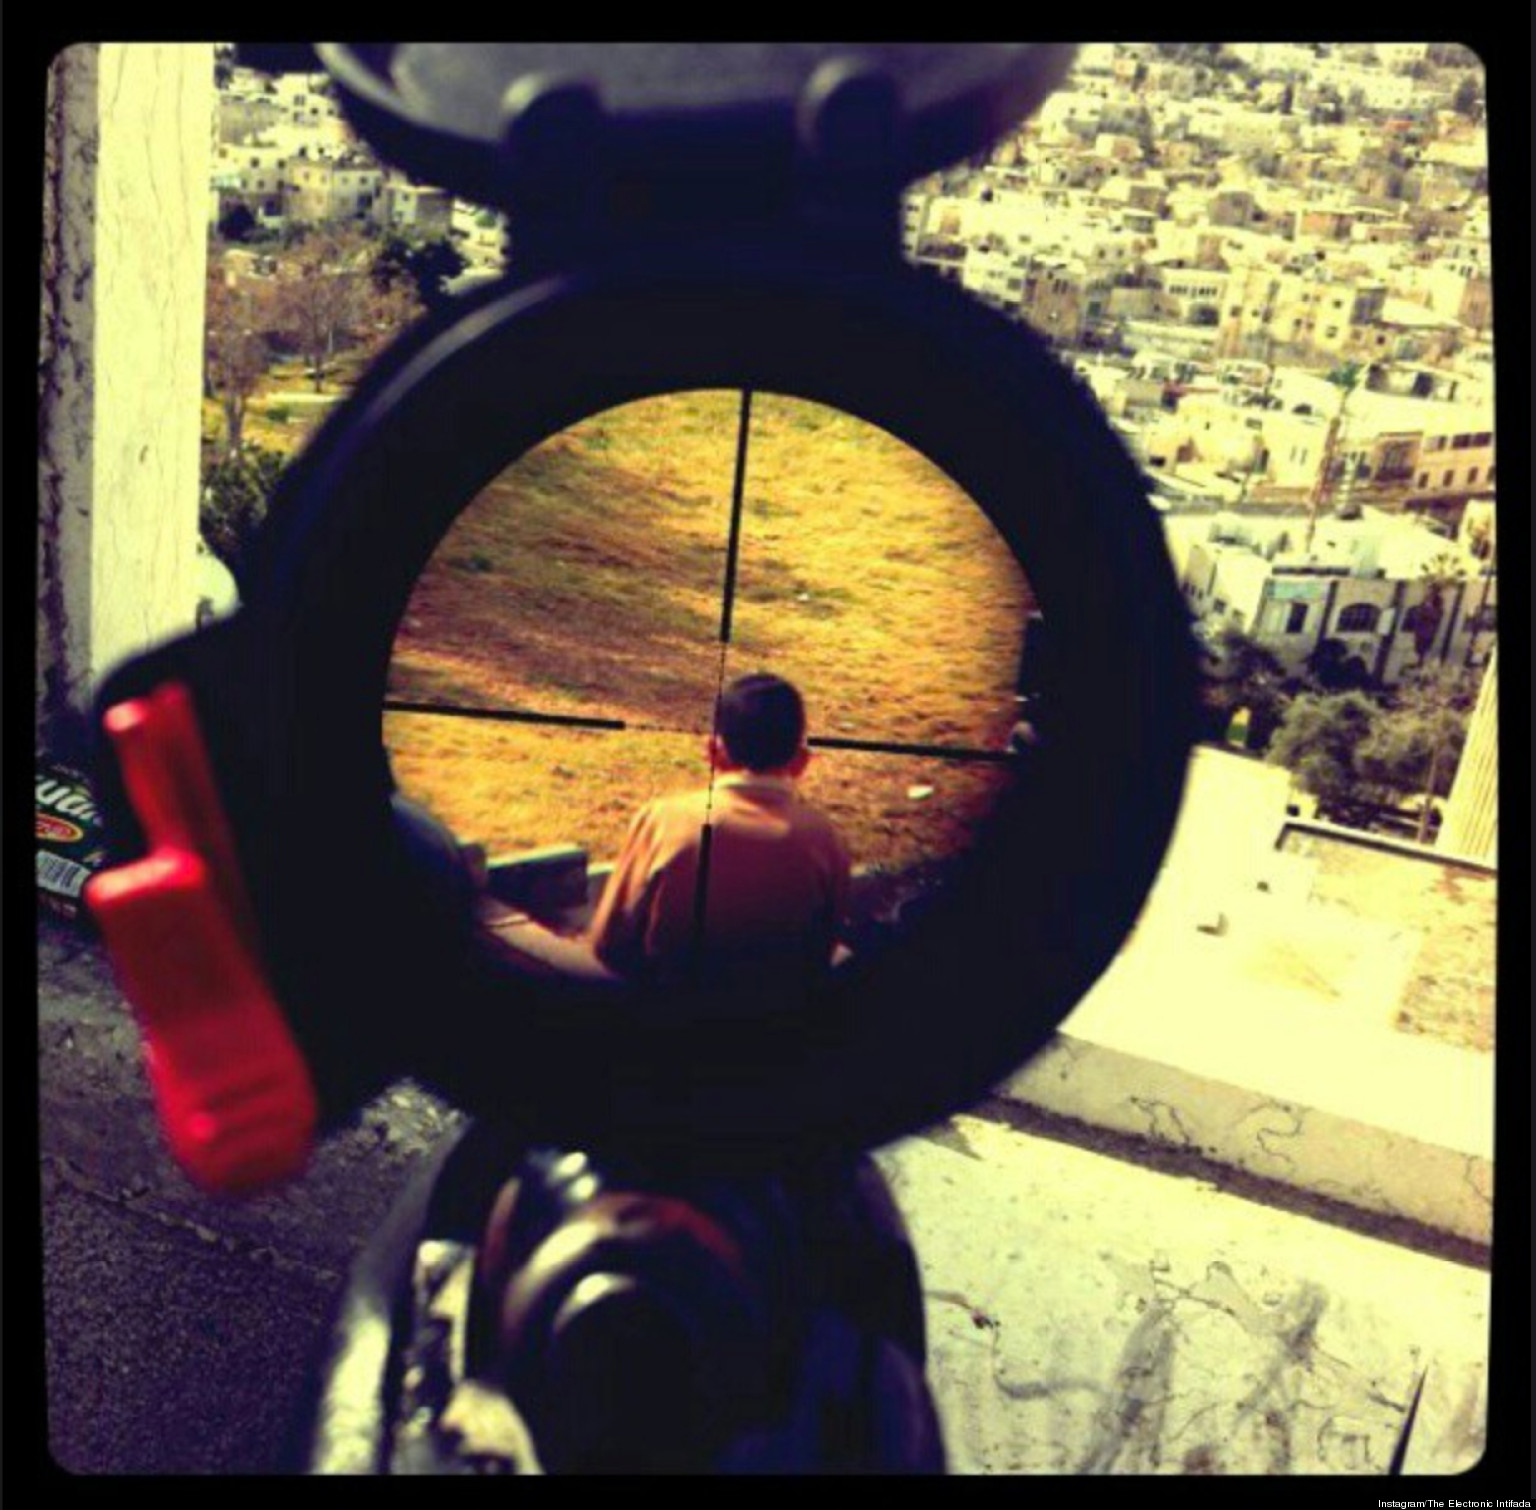 ... Of Palestinian Child In Crosshairs On Instagram (PHOTO) - HuffPost